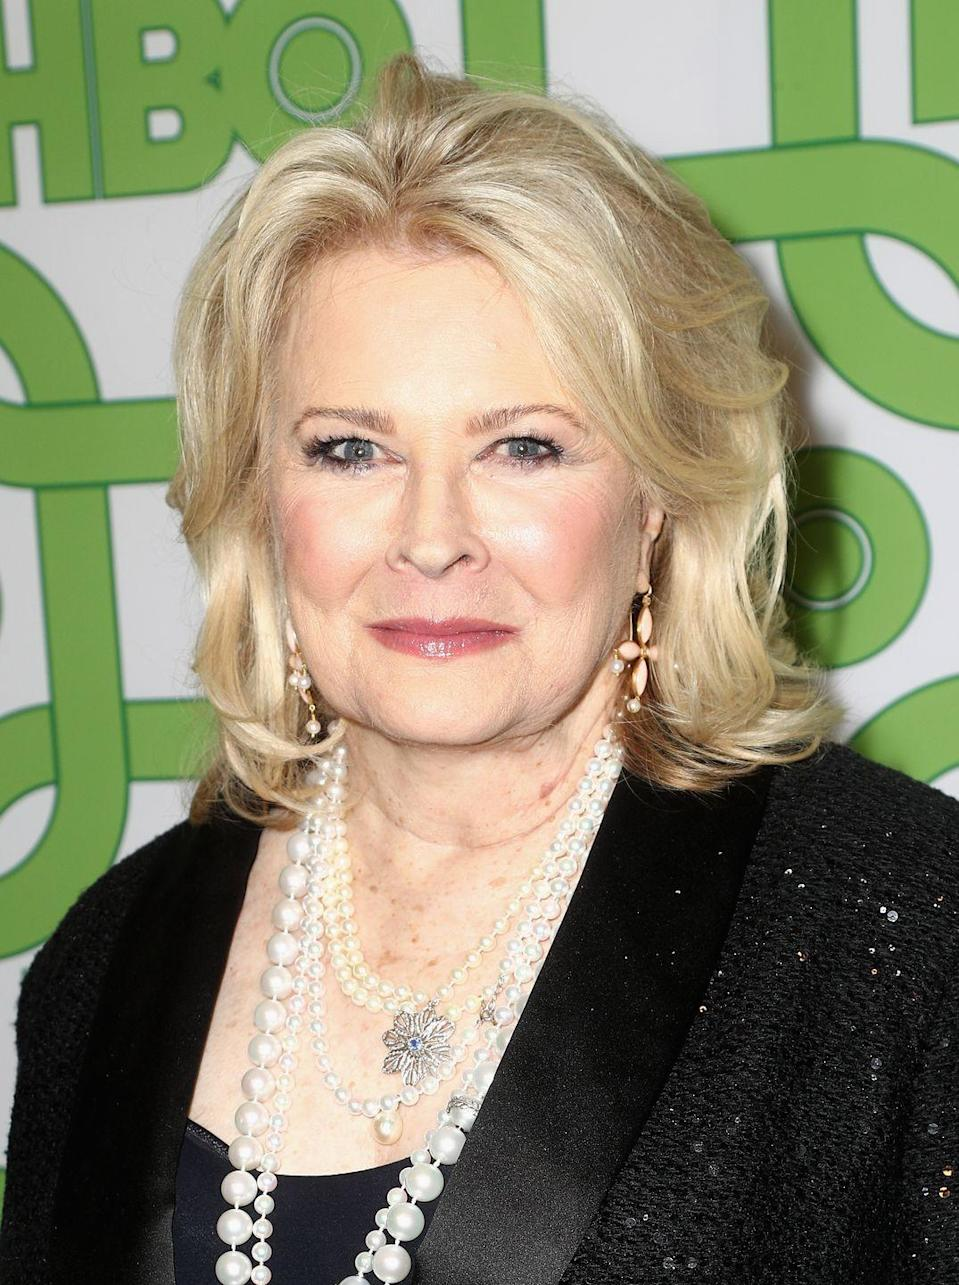 <p>Three years after she donned the crown, Candice made her on-screen debut in <em>The Group</em>. Since then, she's became well known for her work in movies like <em>Carnal Knowledge,</em> <em>Miss Congeniality,</em> and on TV in <em>Murphy Brown</em>. </p>